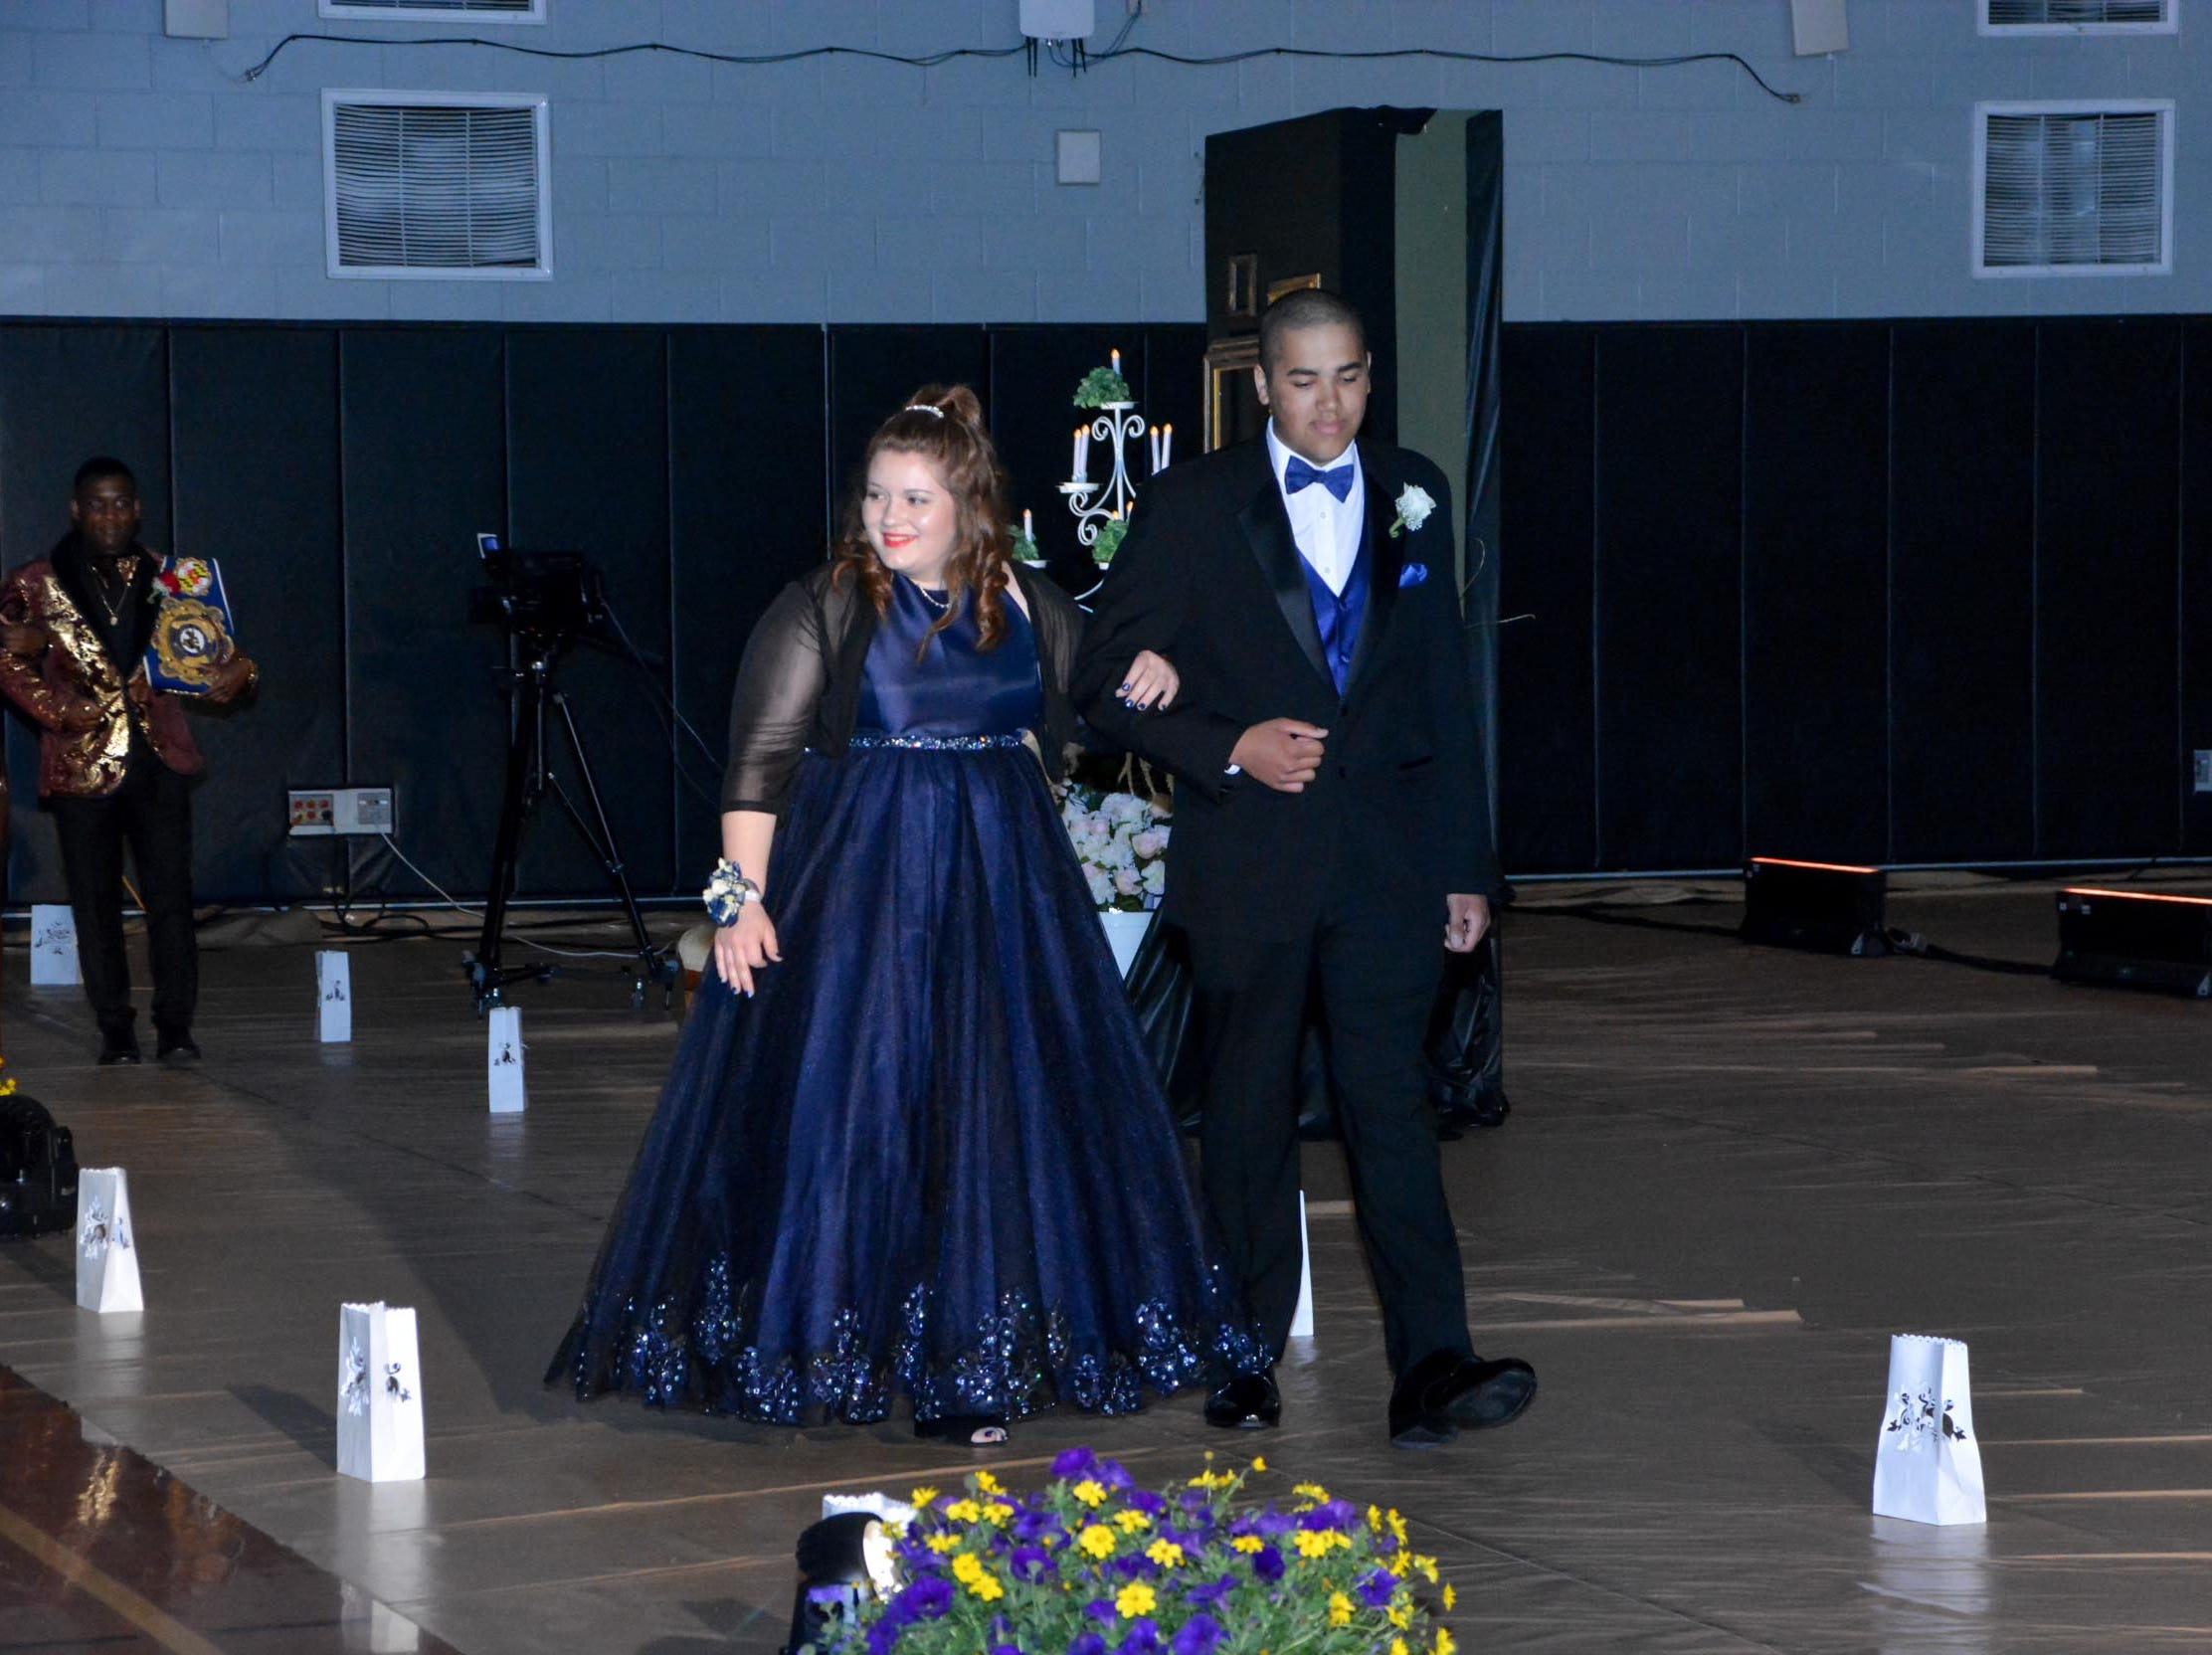 James M. Bennett held its 2019 Grand March at the High School on Saturday, May 4, 2019.